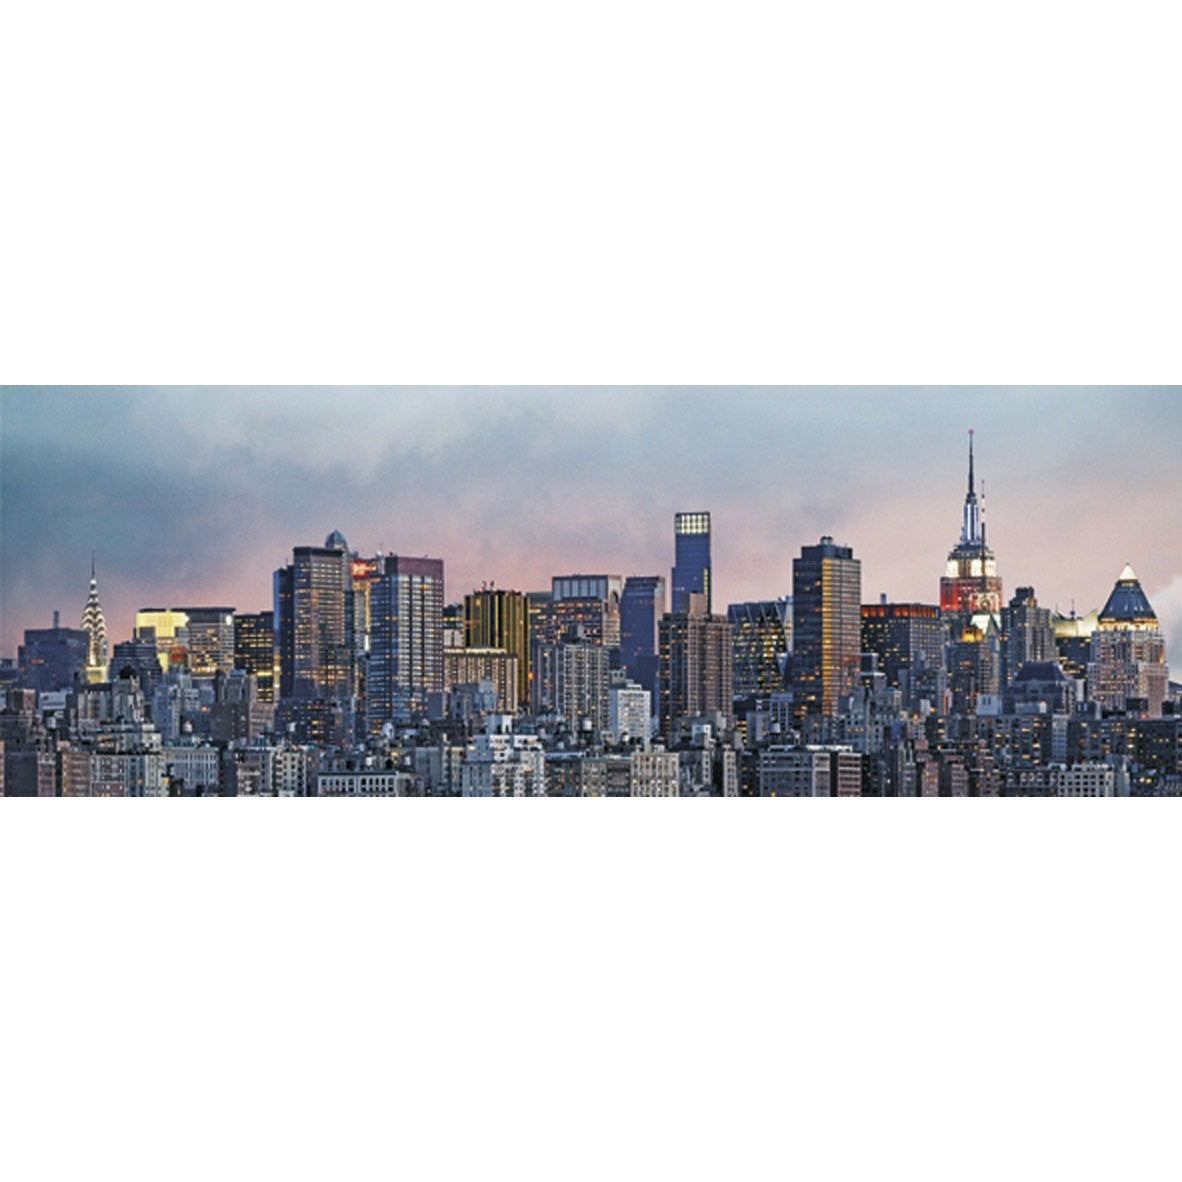 Poster xxl de mur new york 366 x 127 cm leroy merlin - Cadre new york leroy merlin ...